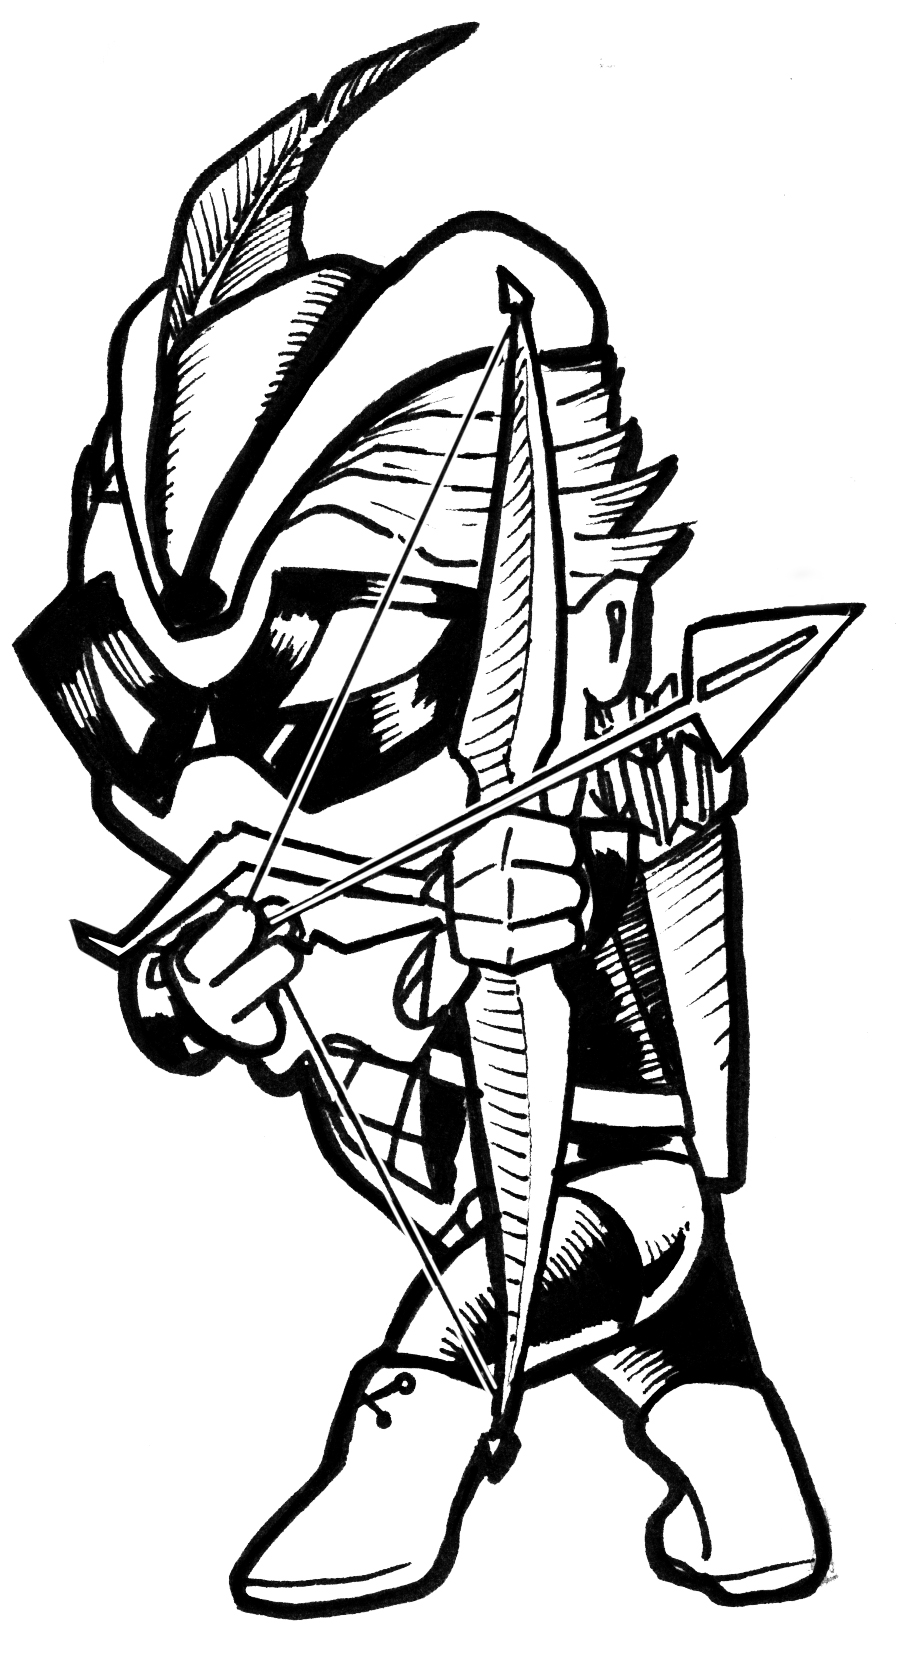 green arrow chibi black and white by artildawn on deviantart - Green Arrow Coloring Pages